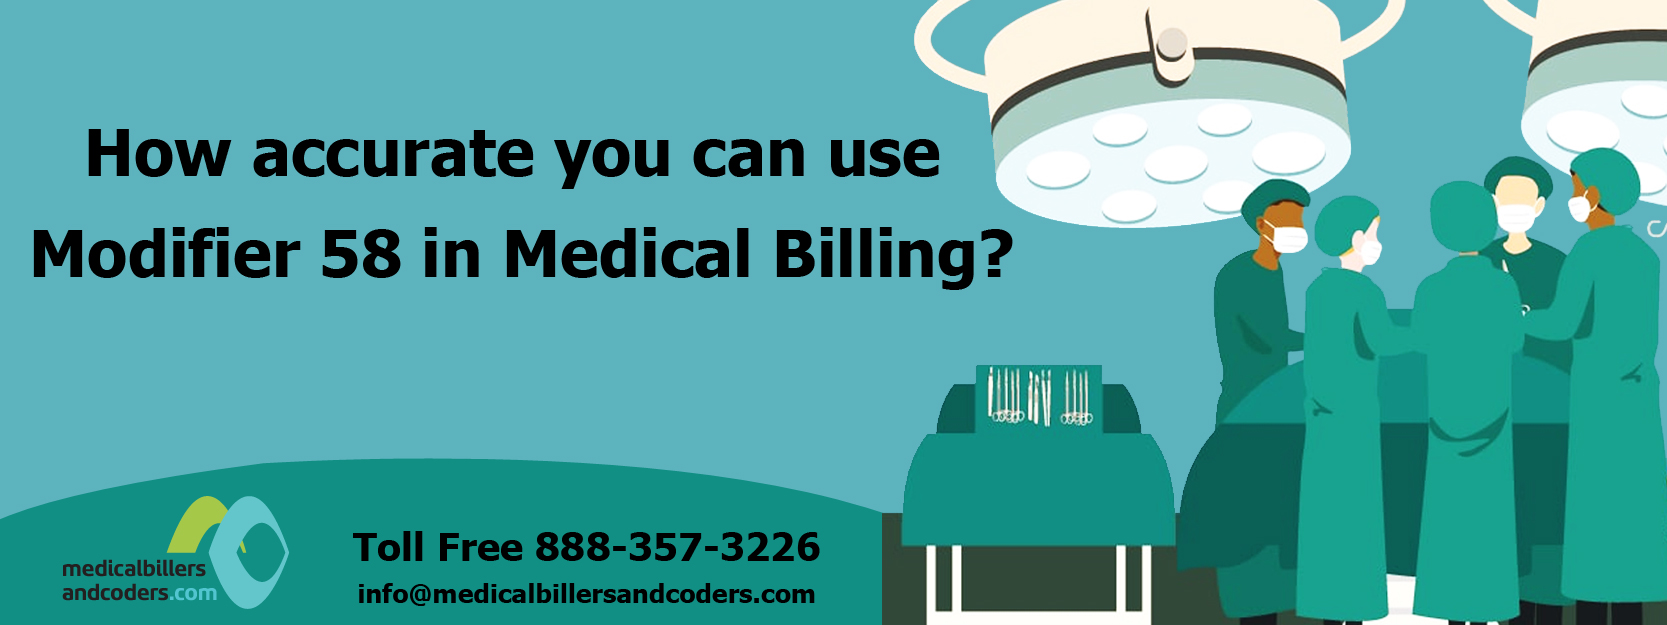 Blog-How-accurate-you-can-use-Modifier-58-in-Medical-Billing